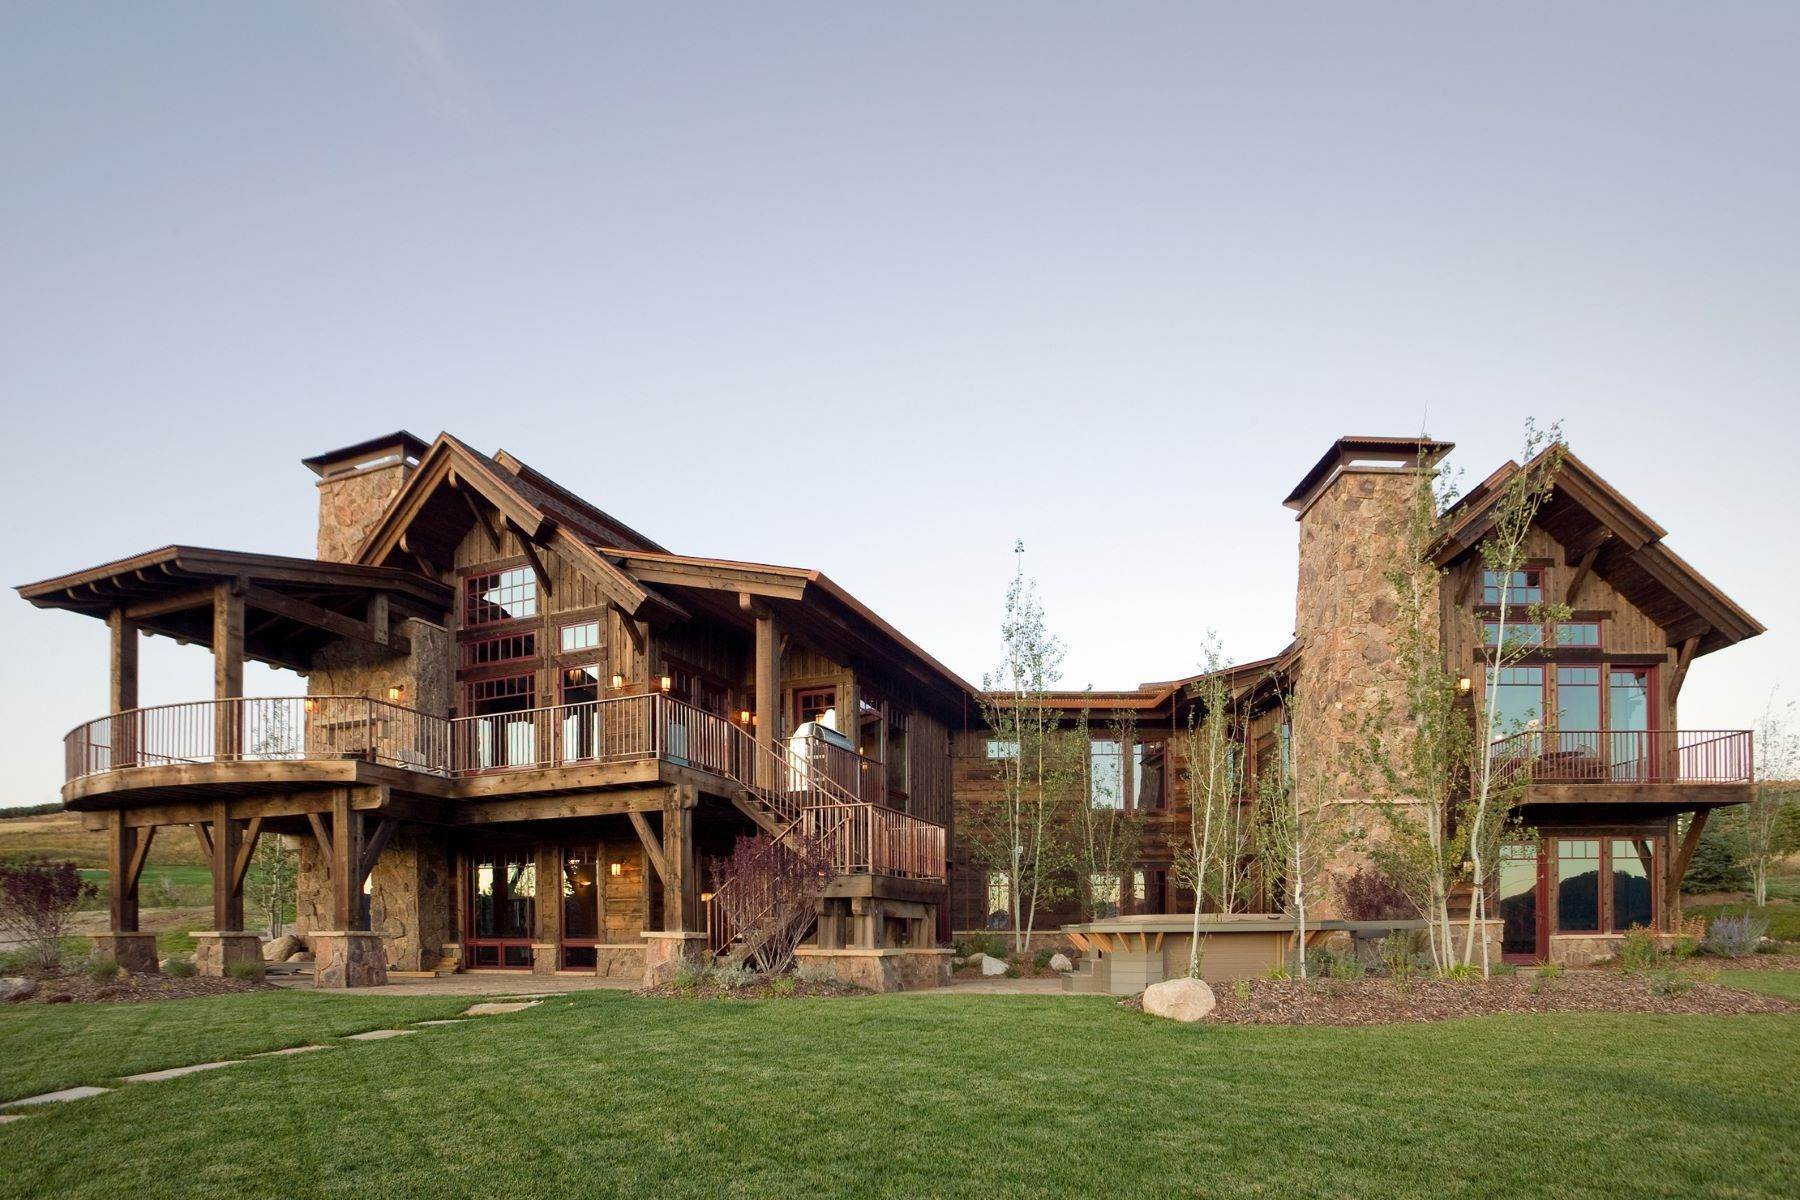 Single Family Homes for Active at Beautiful Home at Catamount Ranch 33640 Catamount Drive Steamboat Springs, Colorado 80487 United States